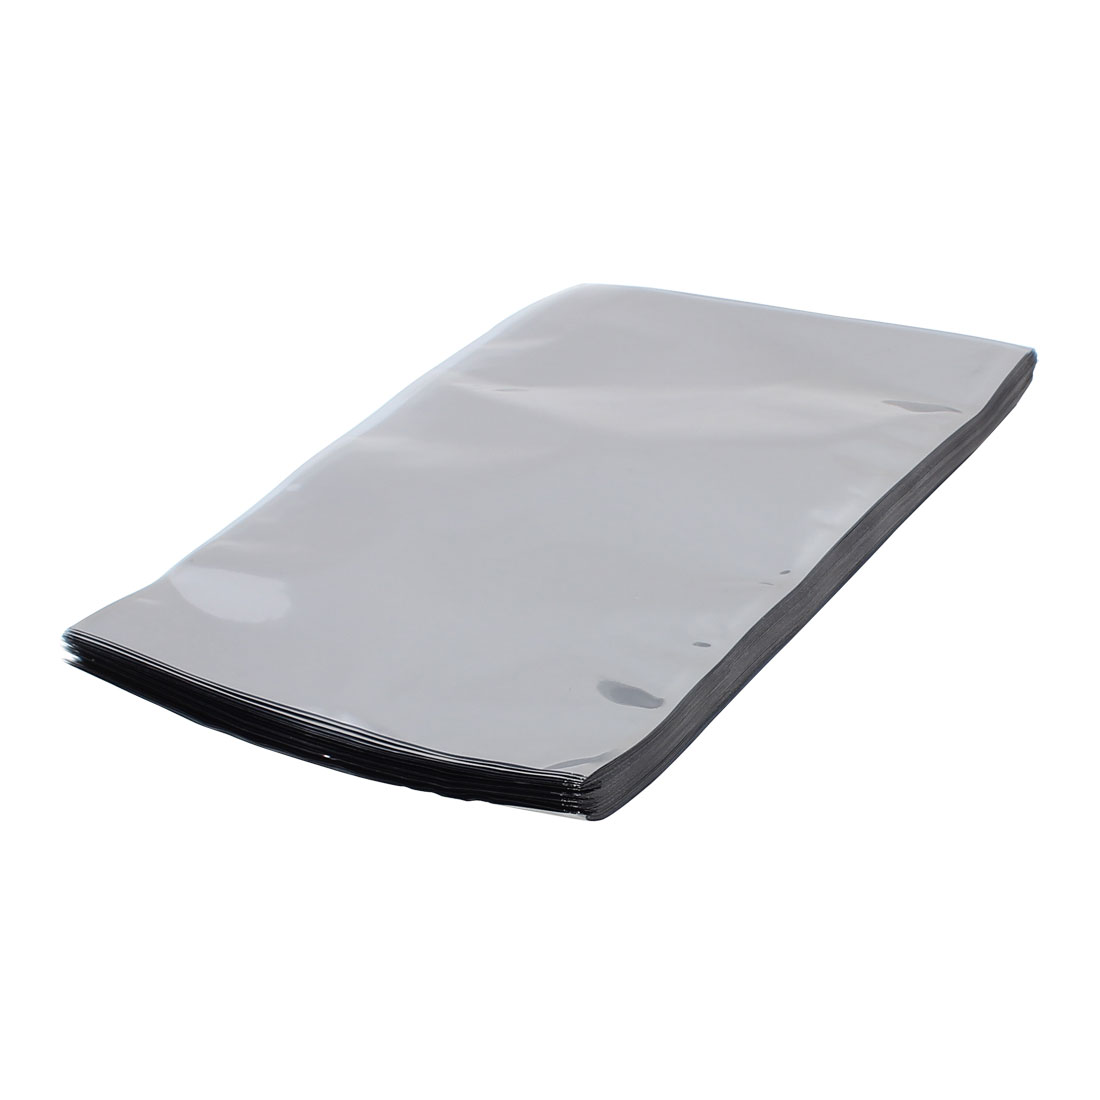 50 Pcs 200mm x 300mm Silver Tone Flat Open Top Anti Static Bag For Electronics